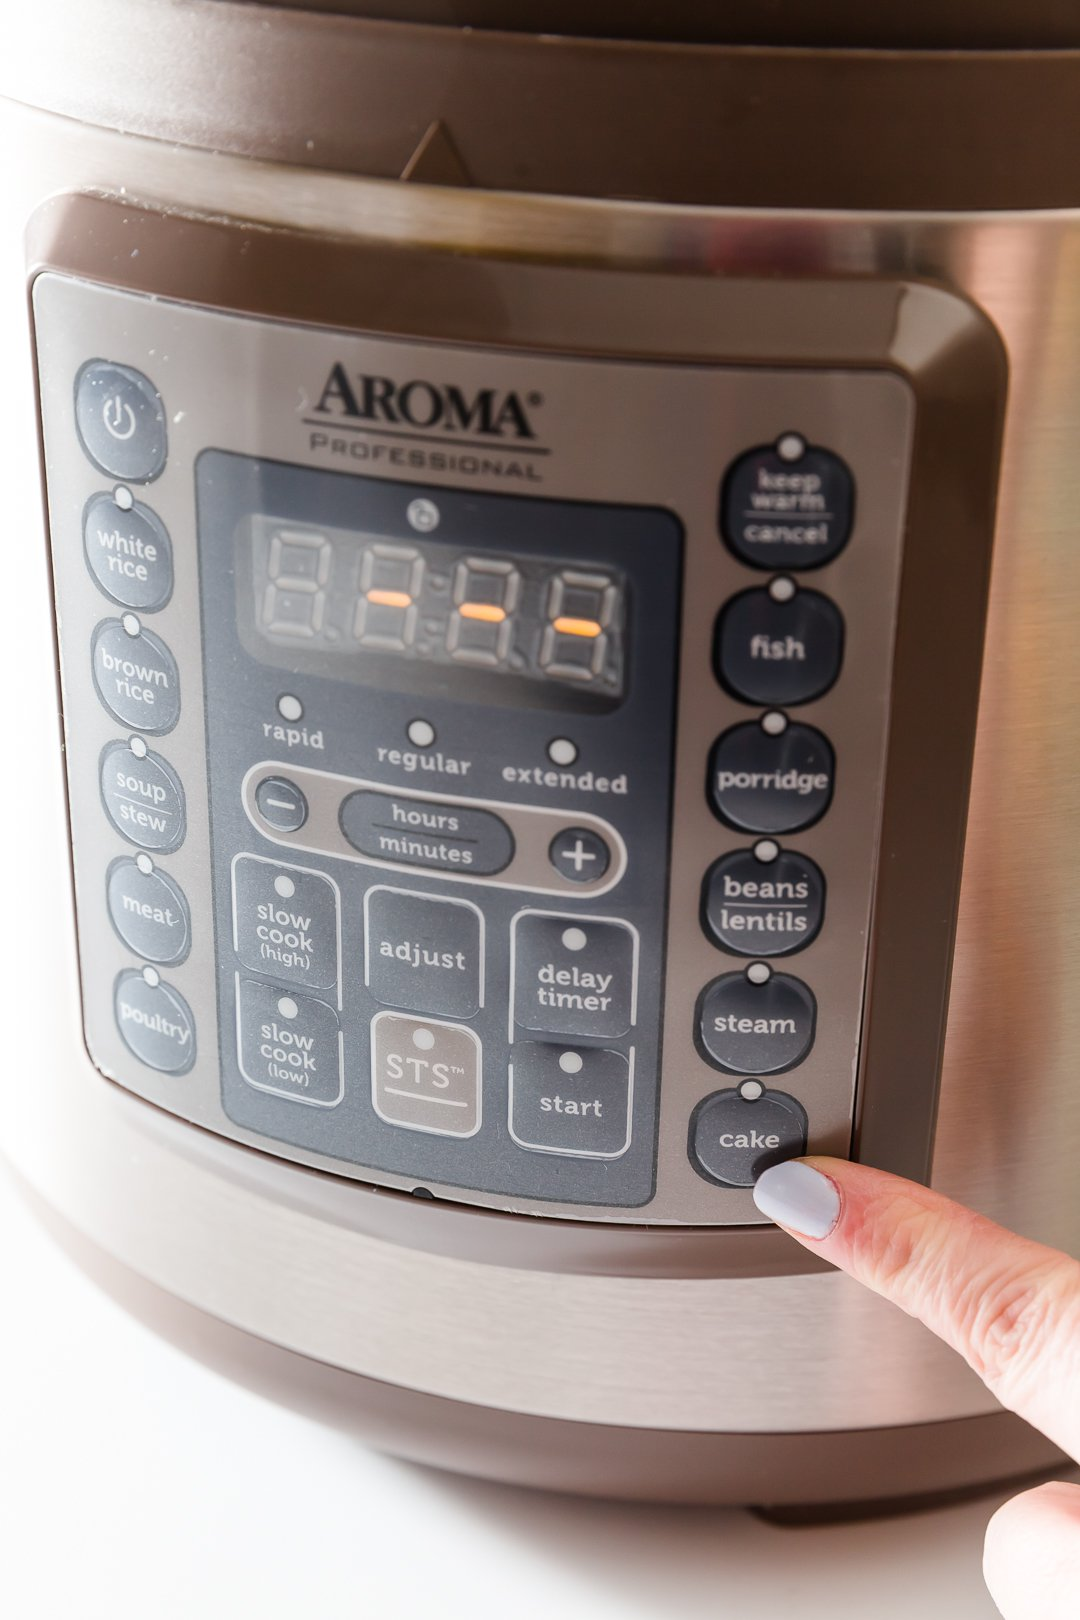 Pointing at the cake button on Aroma's pressure cooker